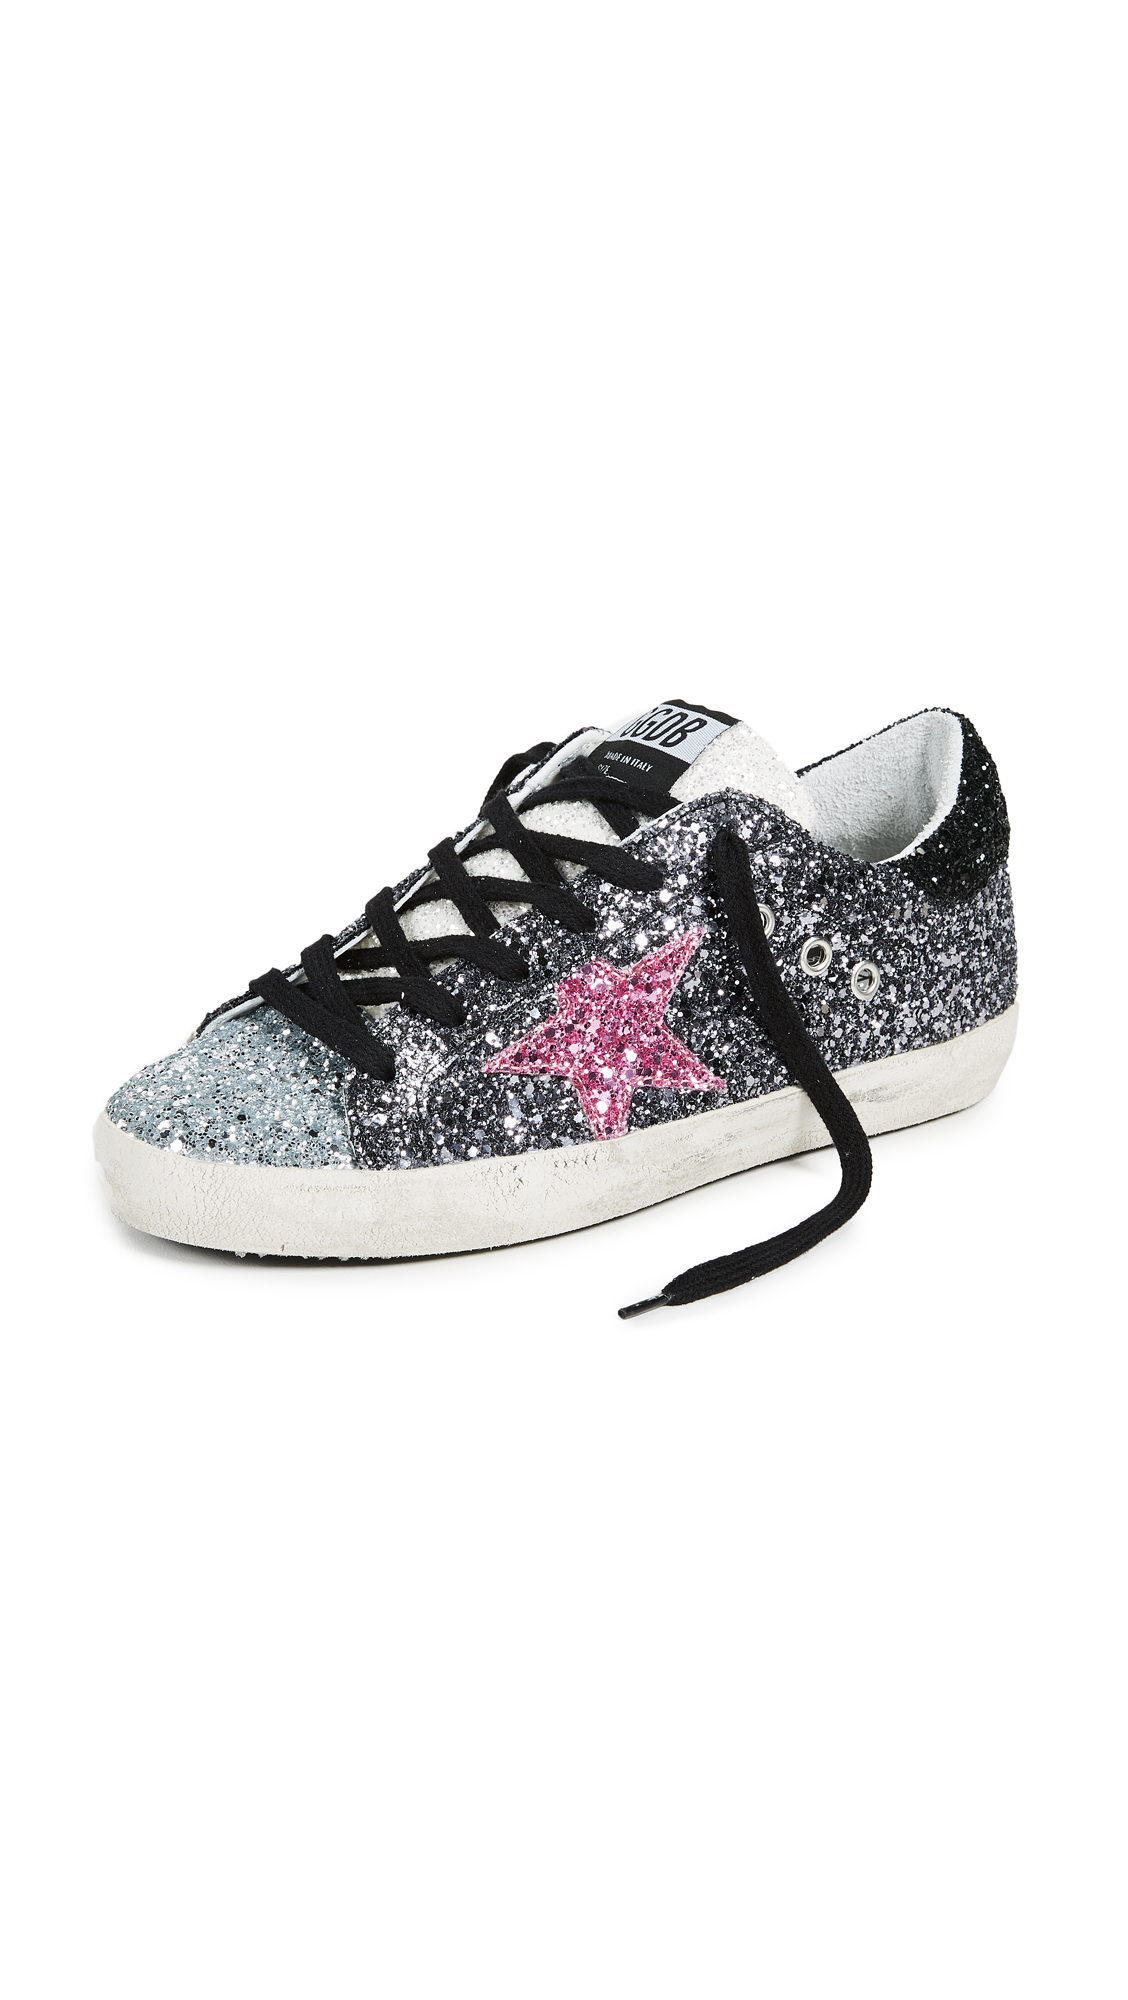 Golden Goose Superstar Sneakers - Gunmetal/Silver/Pink